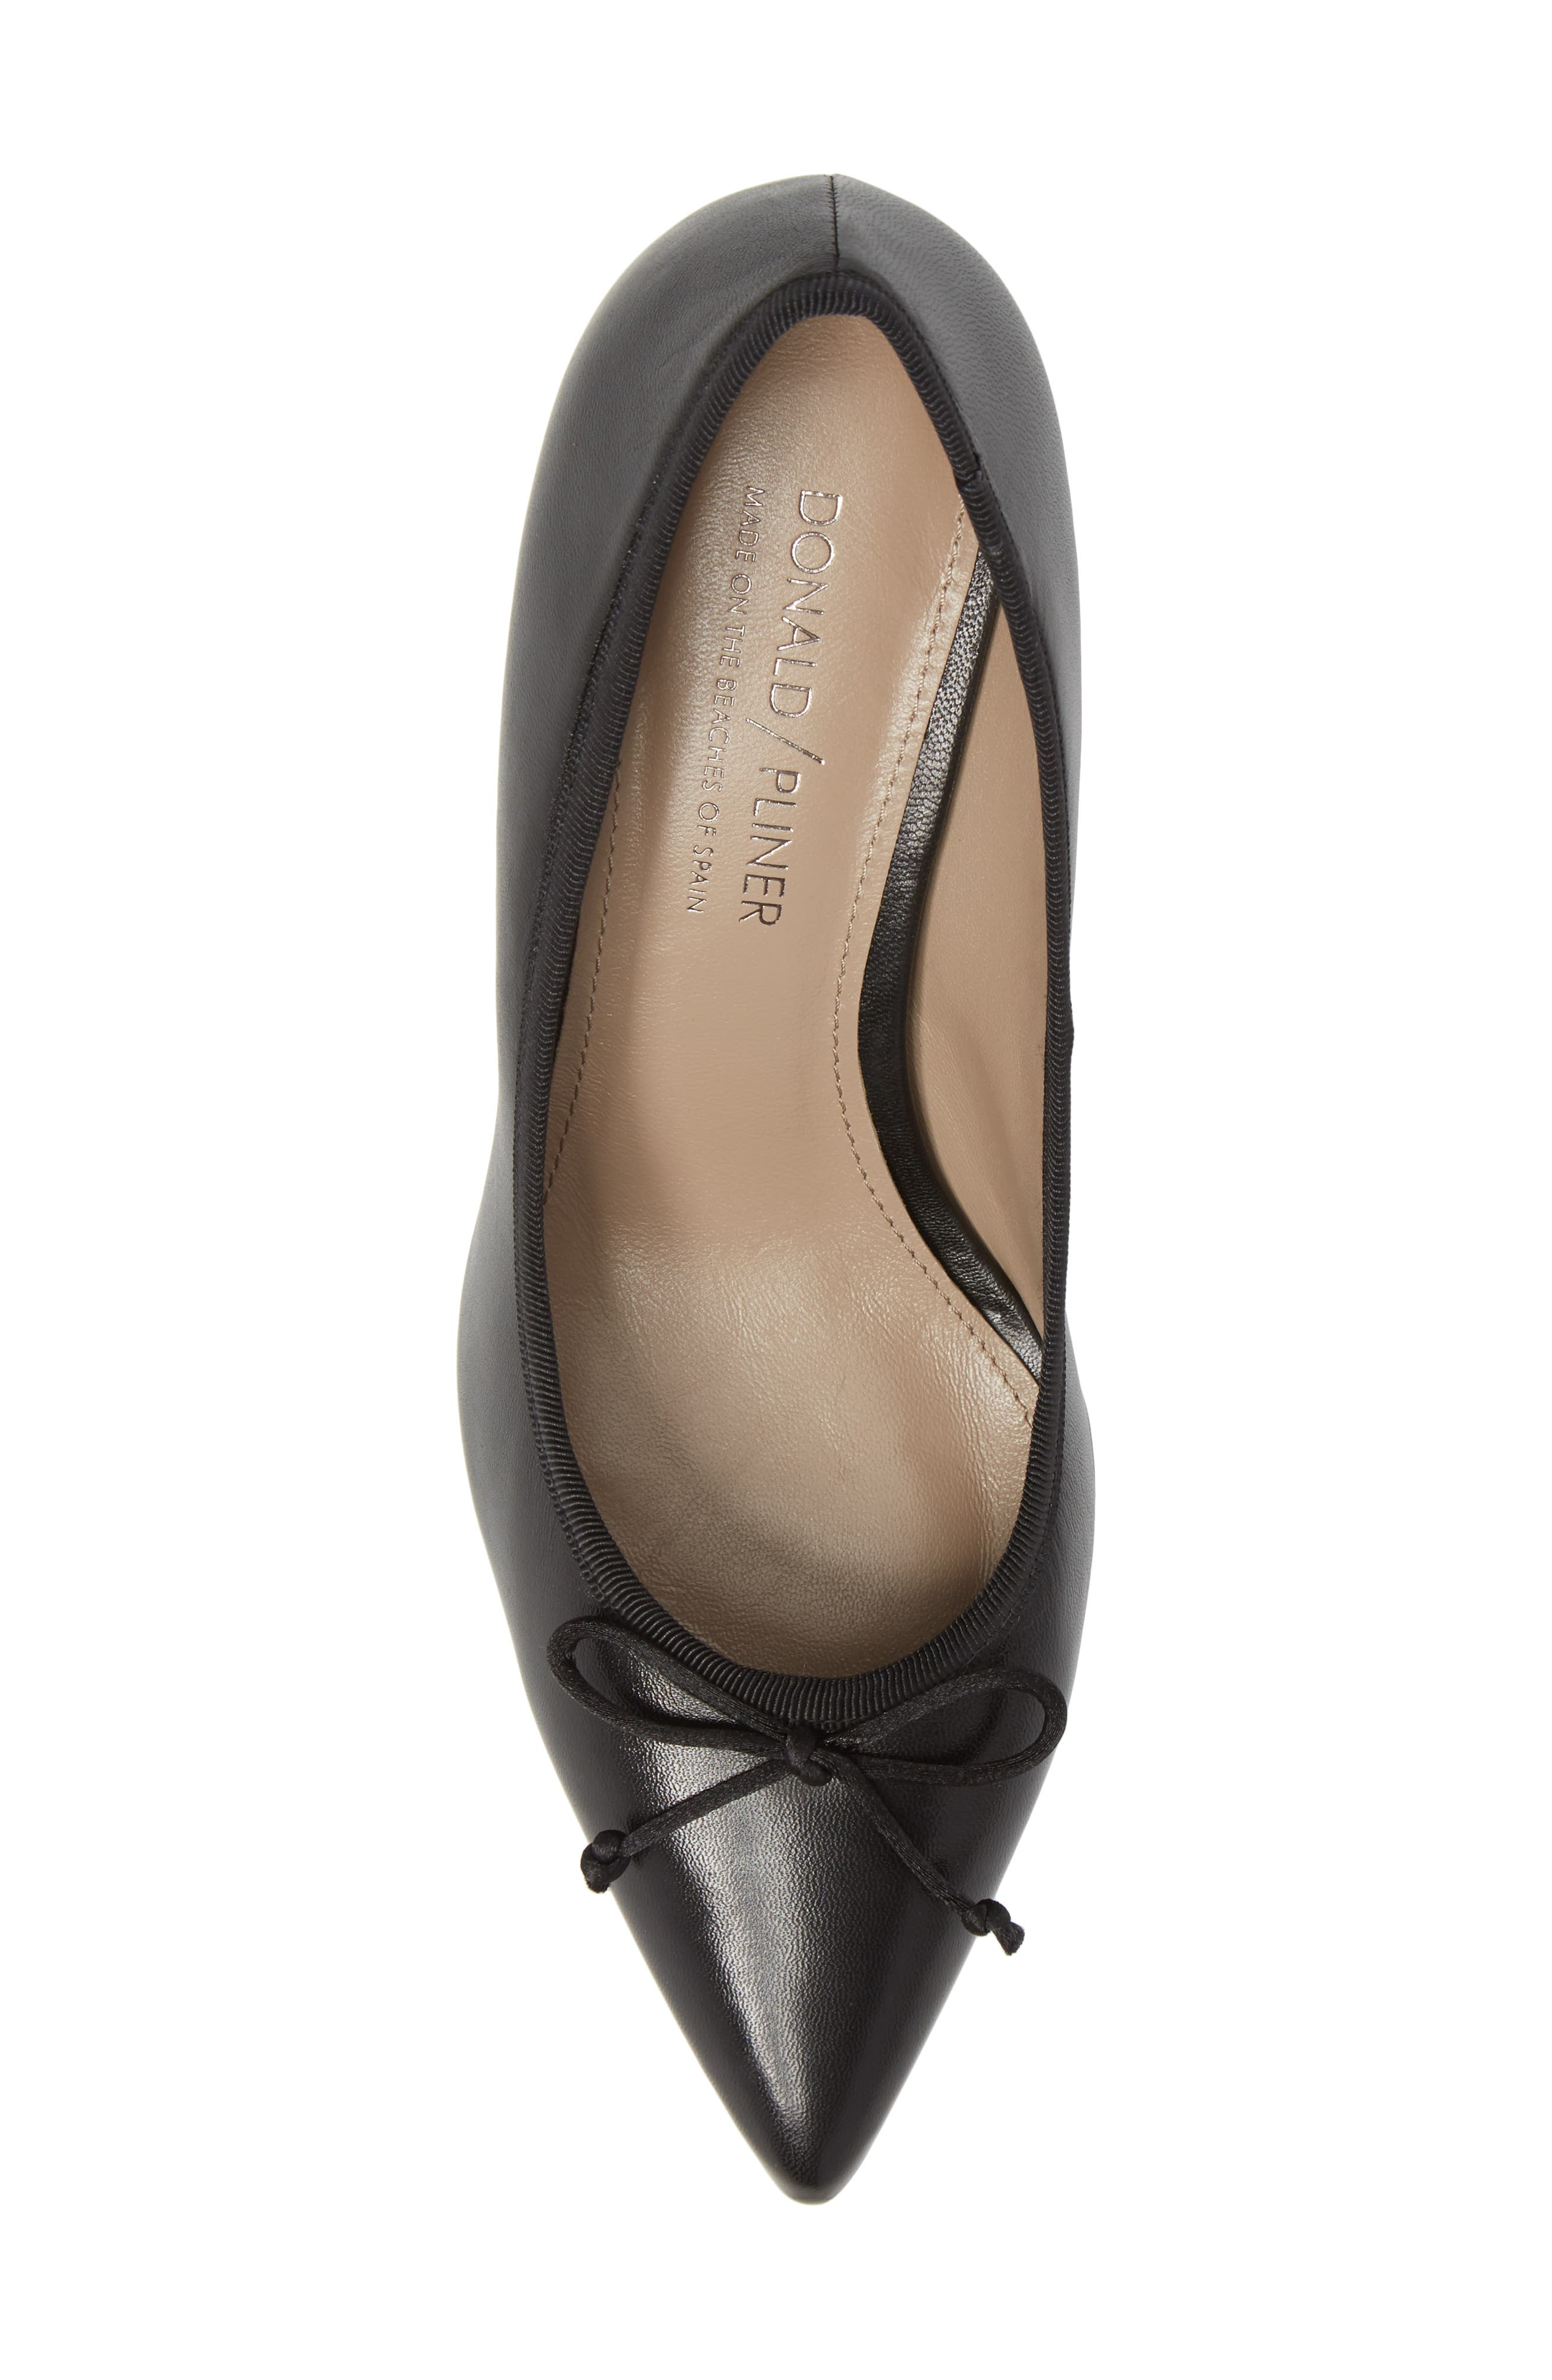 Asia Pointy Toe Pump,                             Alternate thumbnail 5, color,                             Black Leather